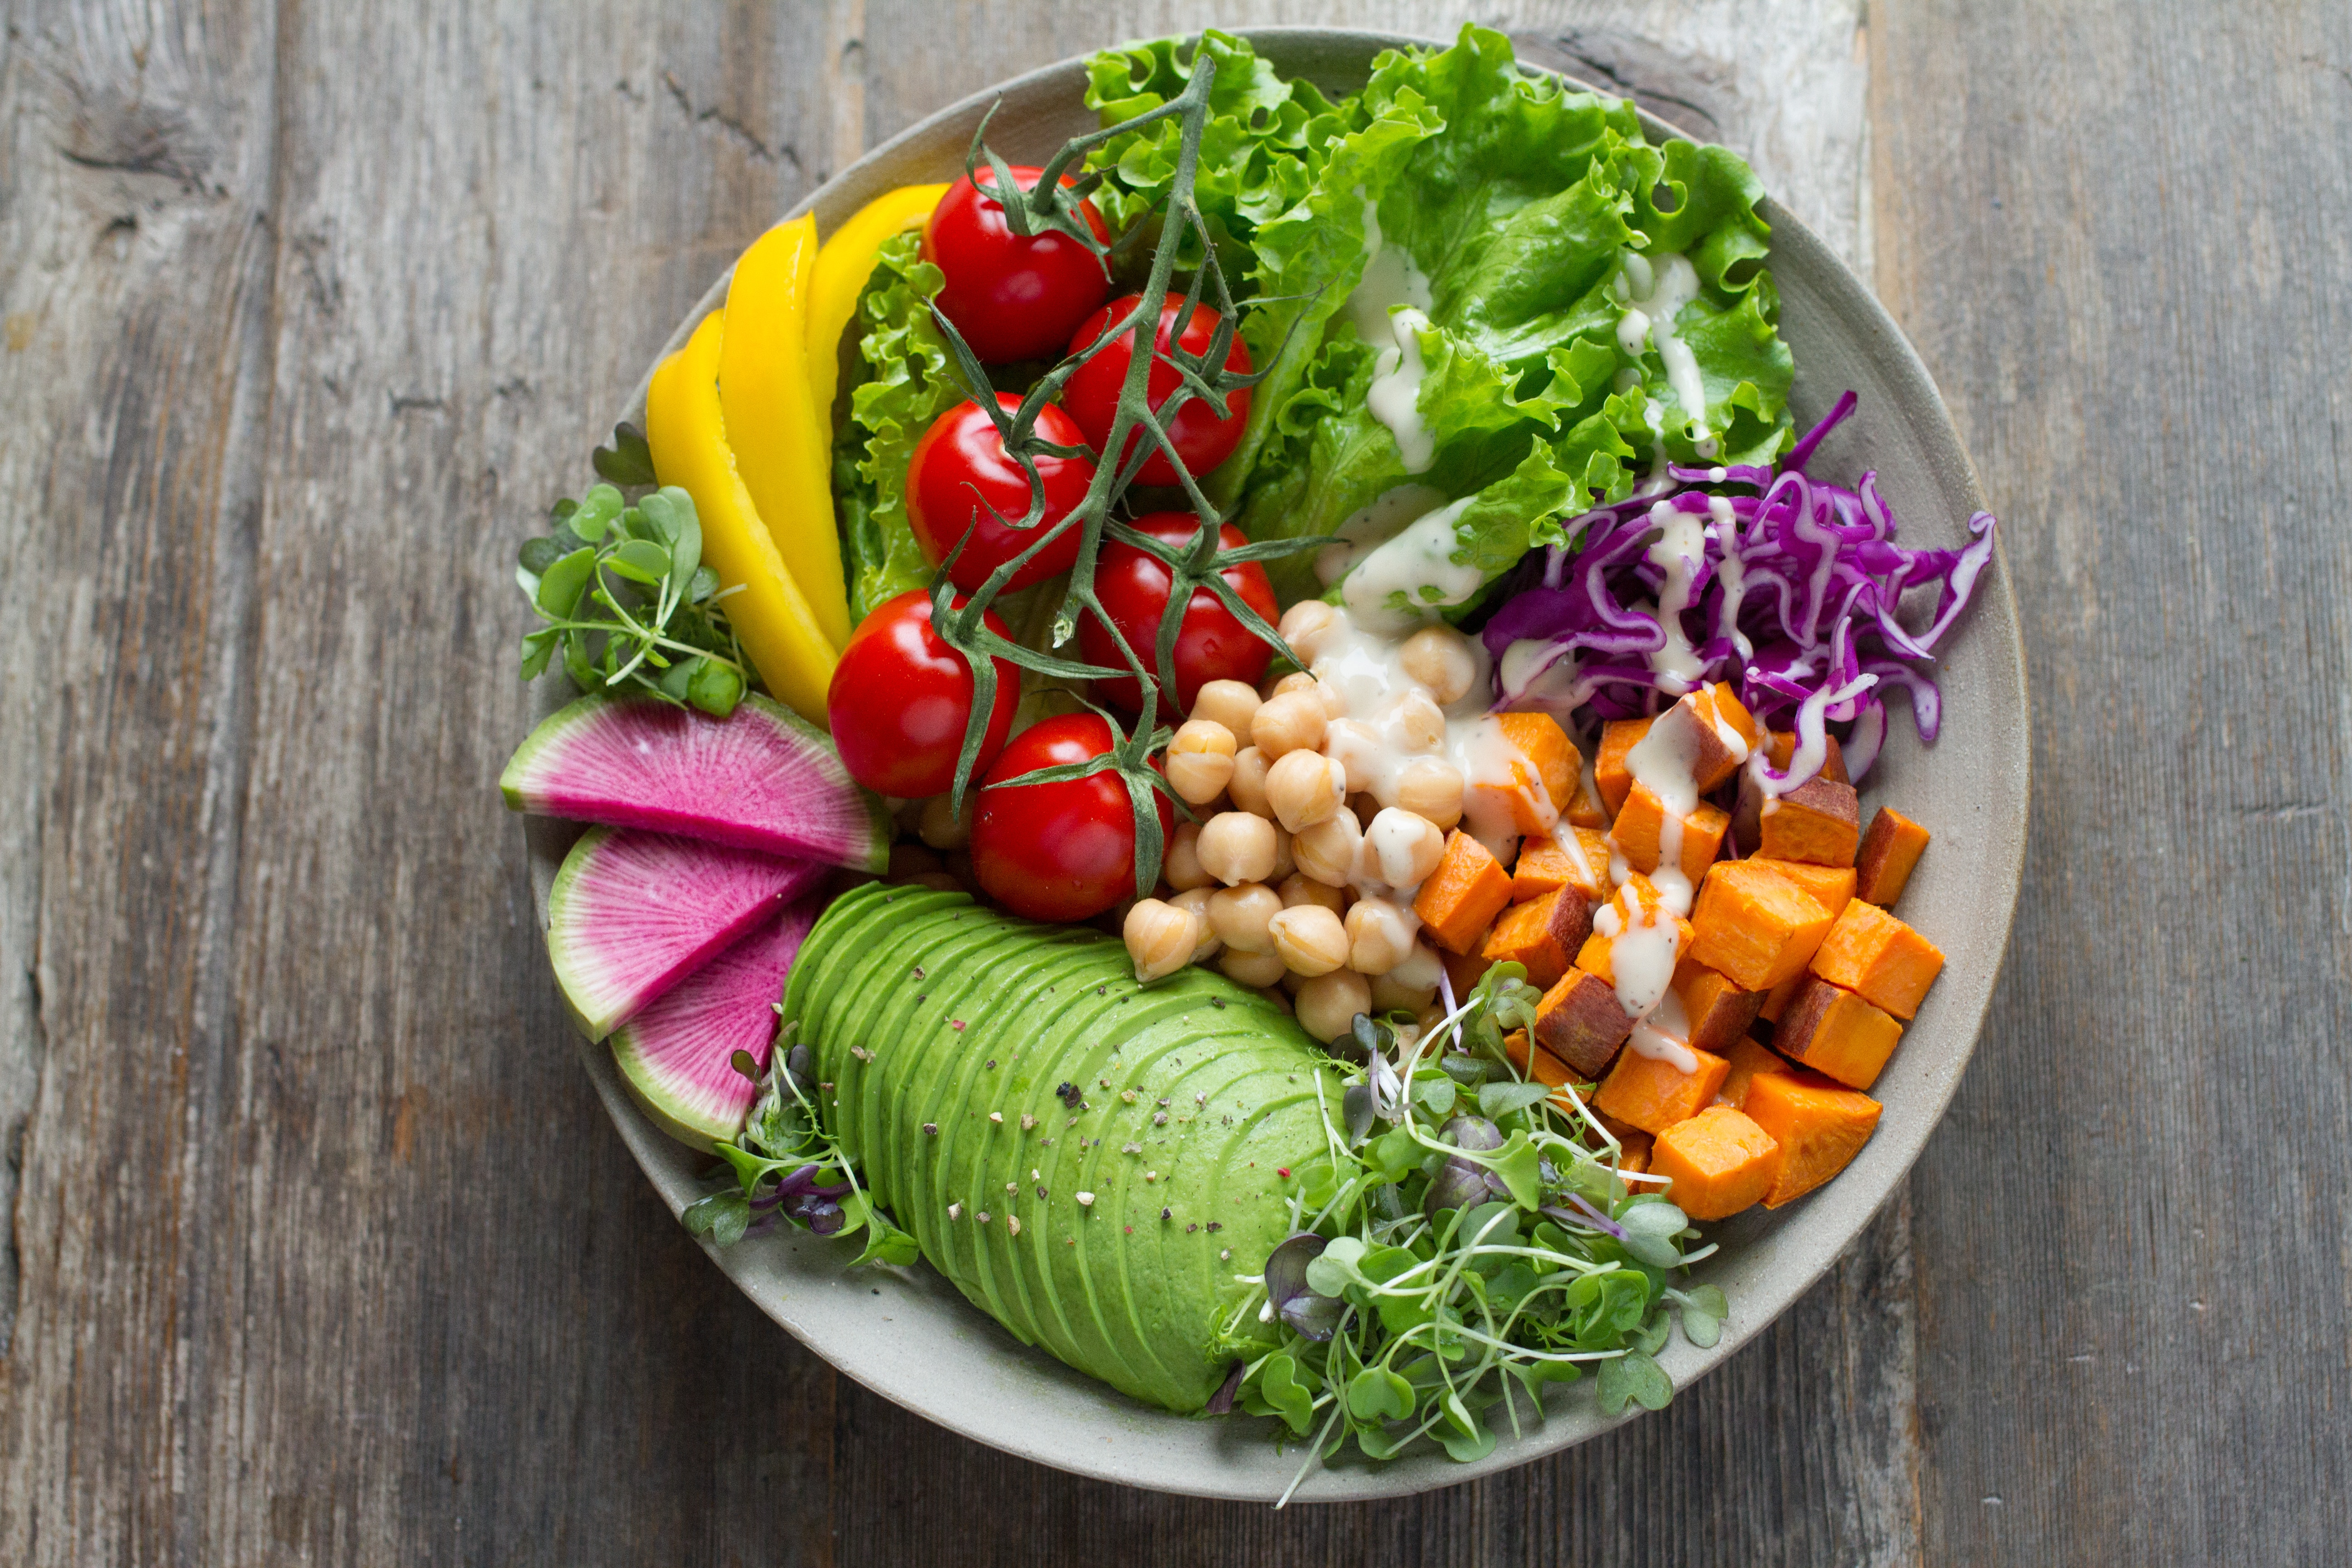 eating healthy meals, like this one, are an important part of living with diabetes